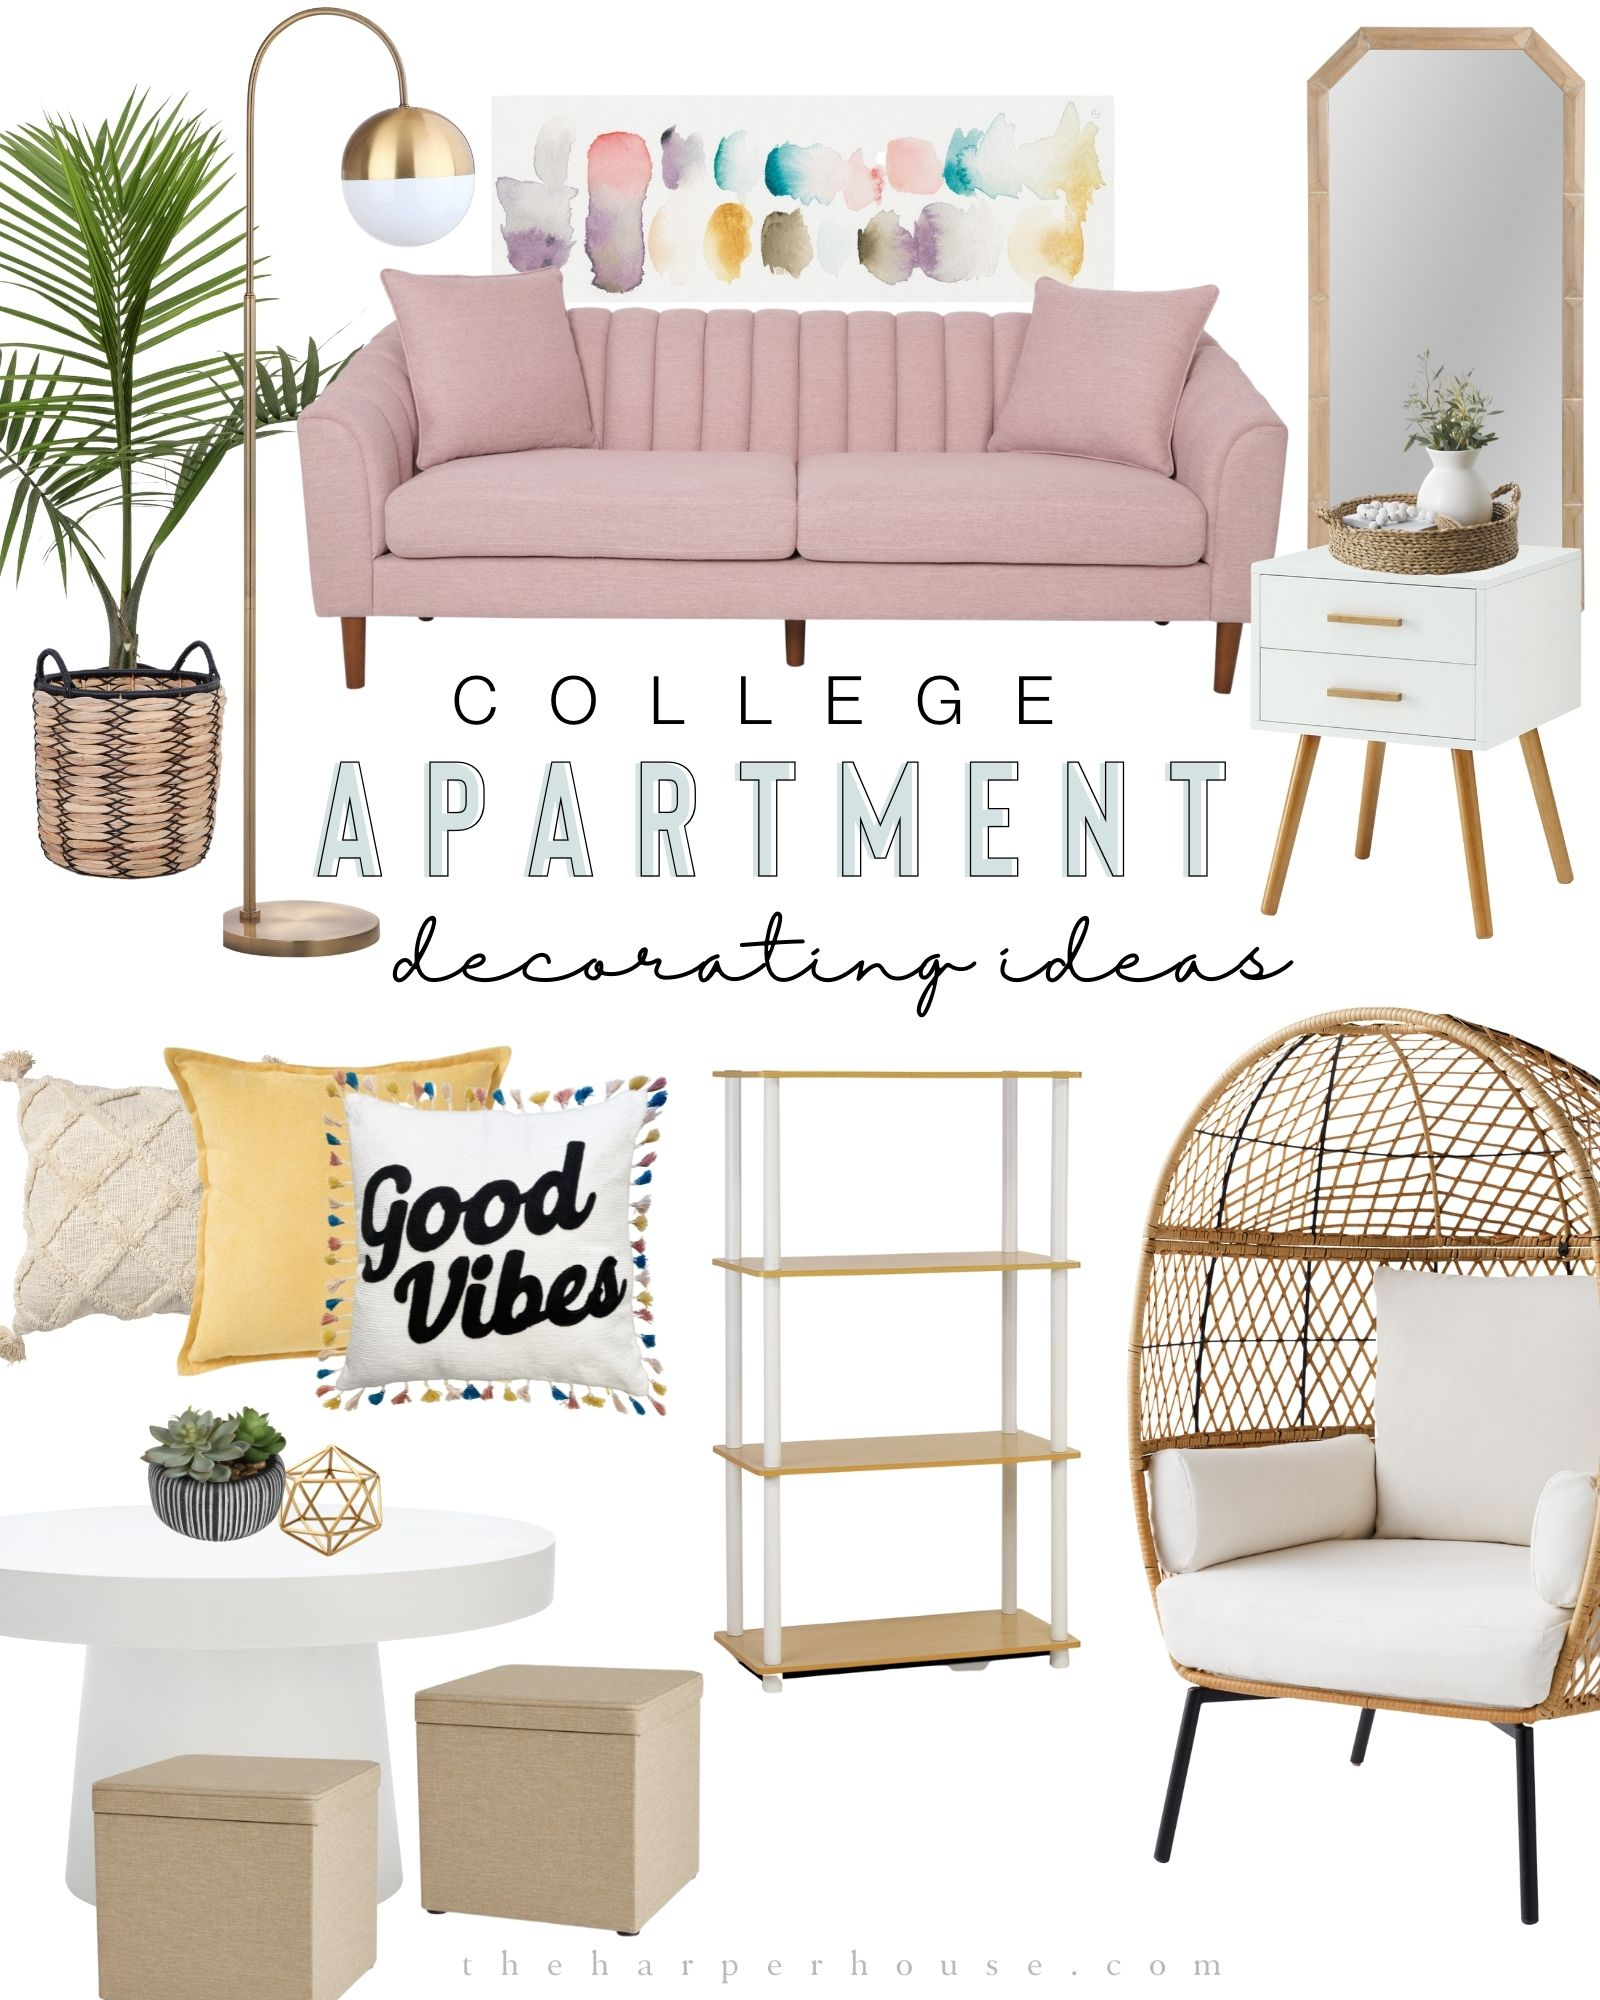 College apartment decorating ideas with boho decor featuring a blush pink sofa, egg chair, round coffee table and storage ottomans